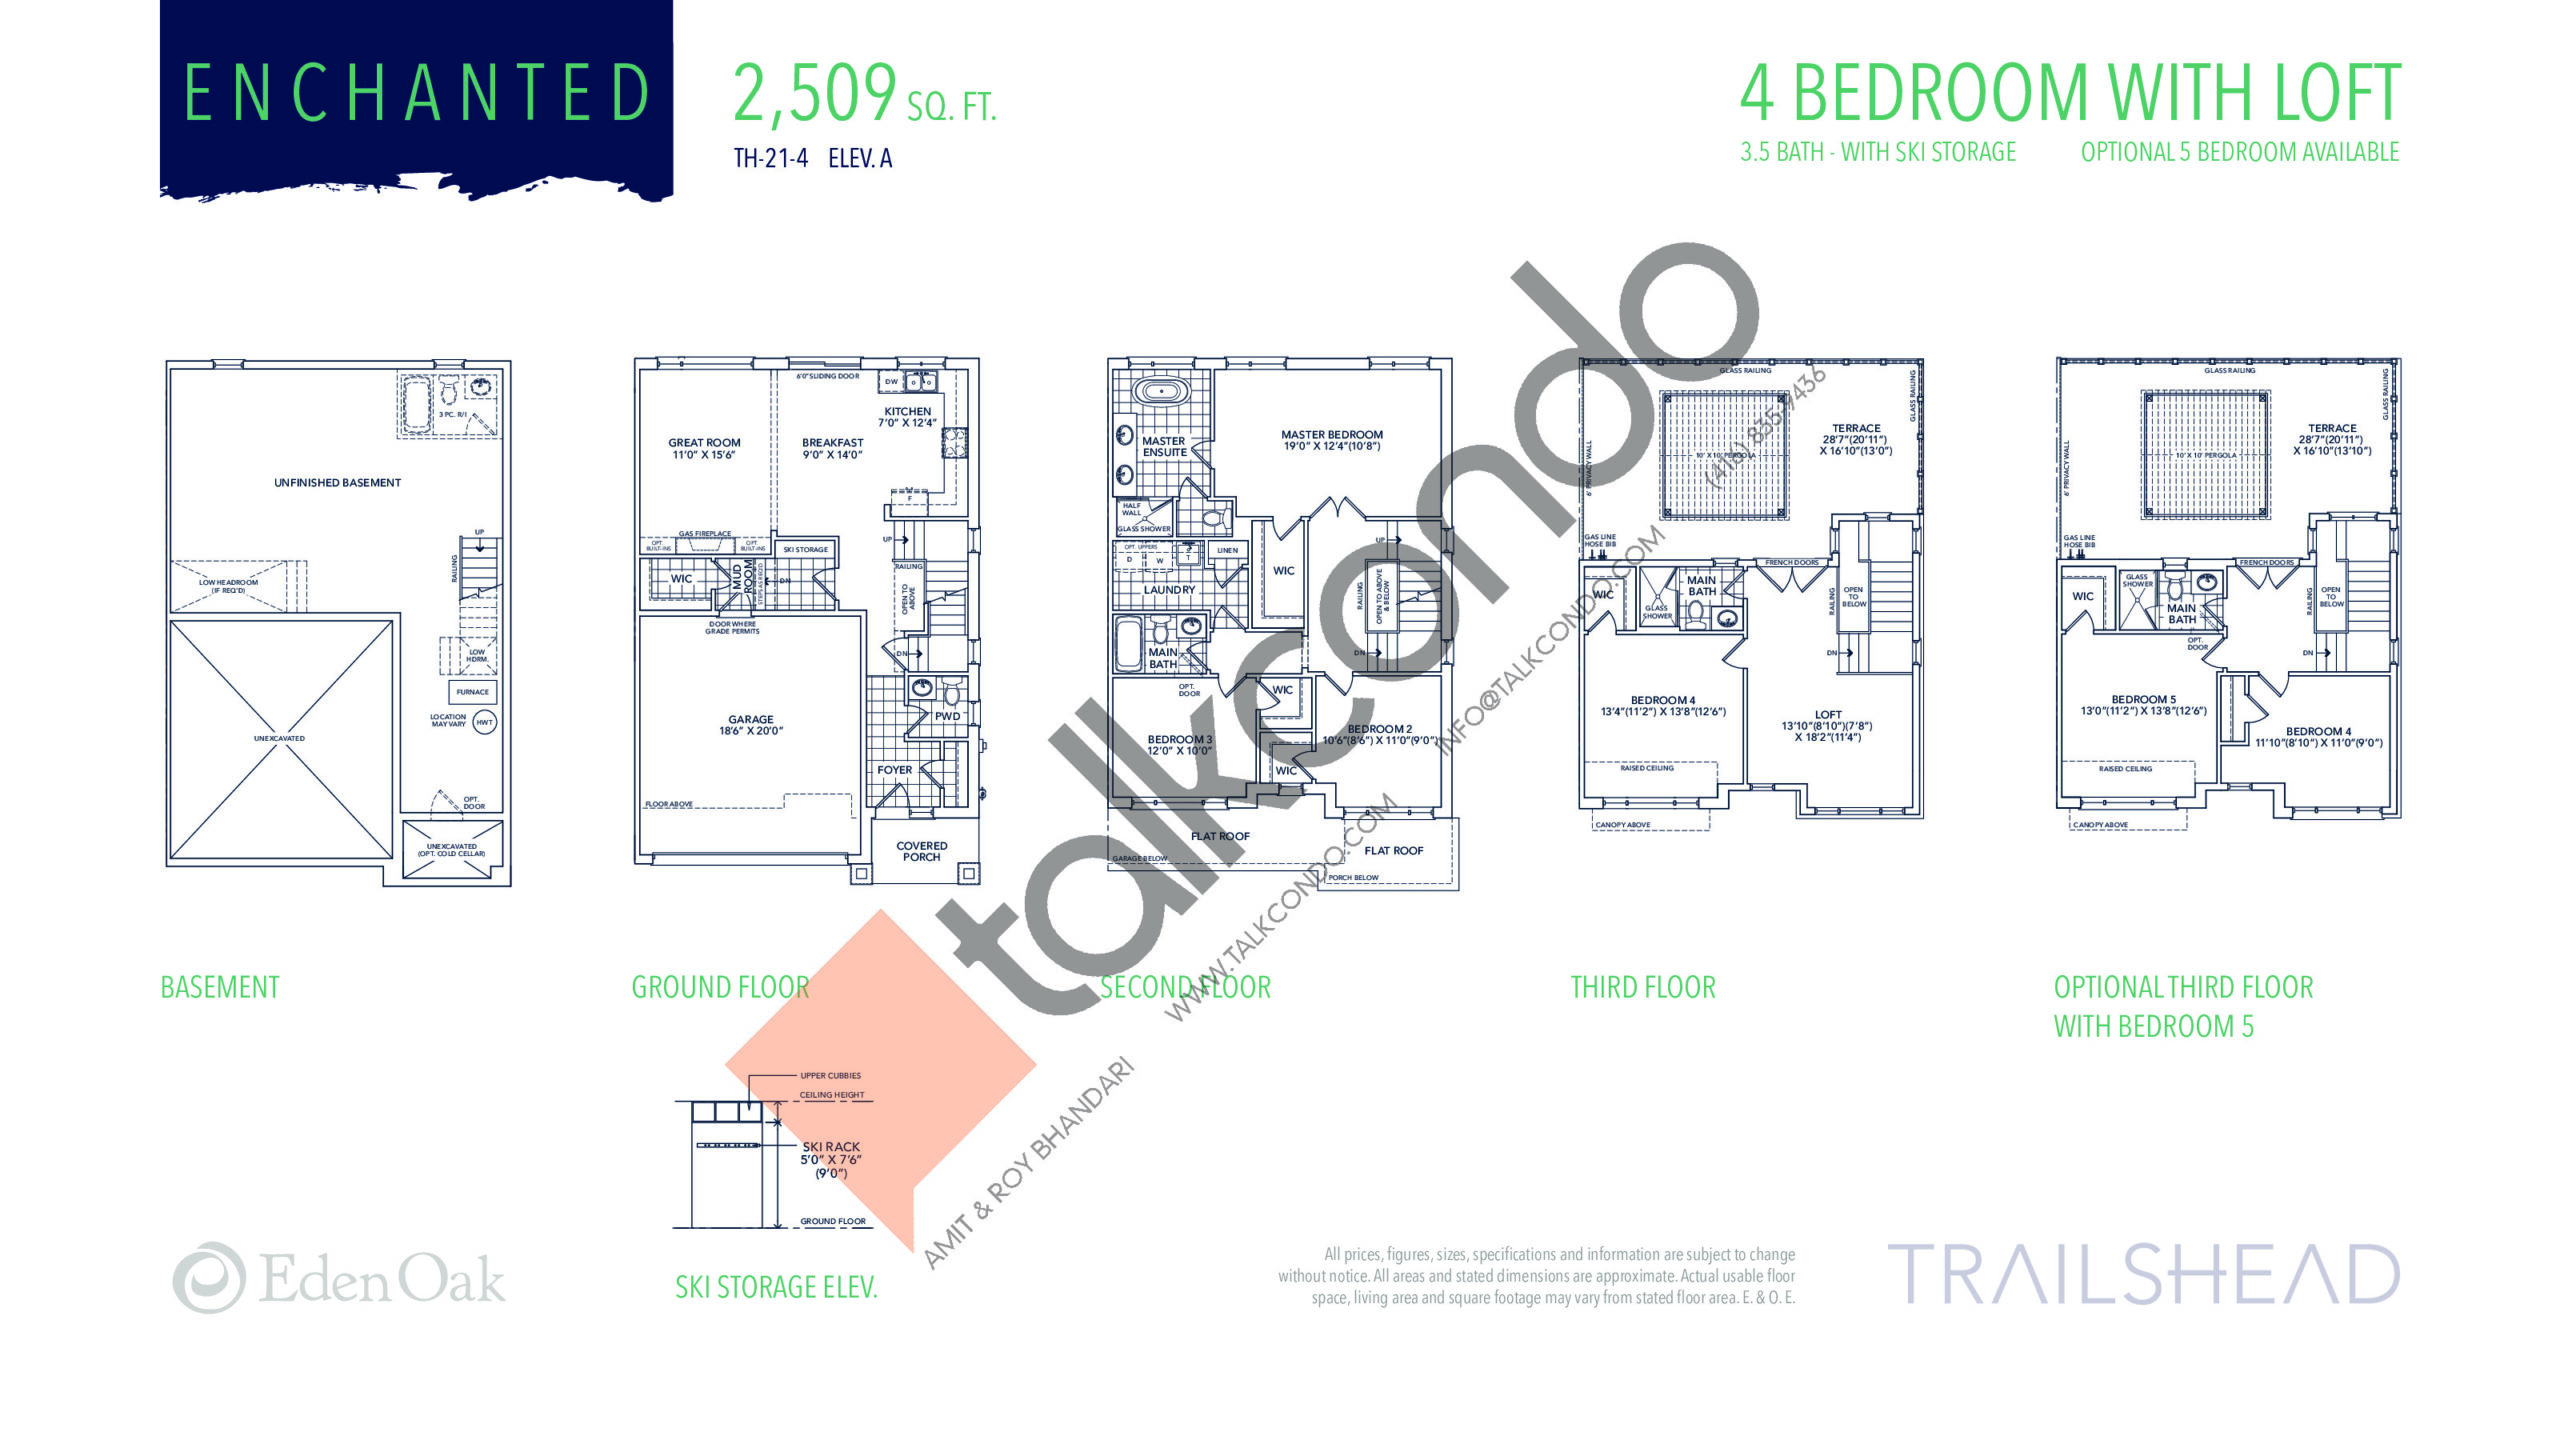 Enchanted (1/2) Floor Plan at Trailshead Towns - 2509 sq.ft